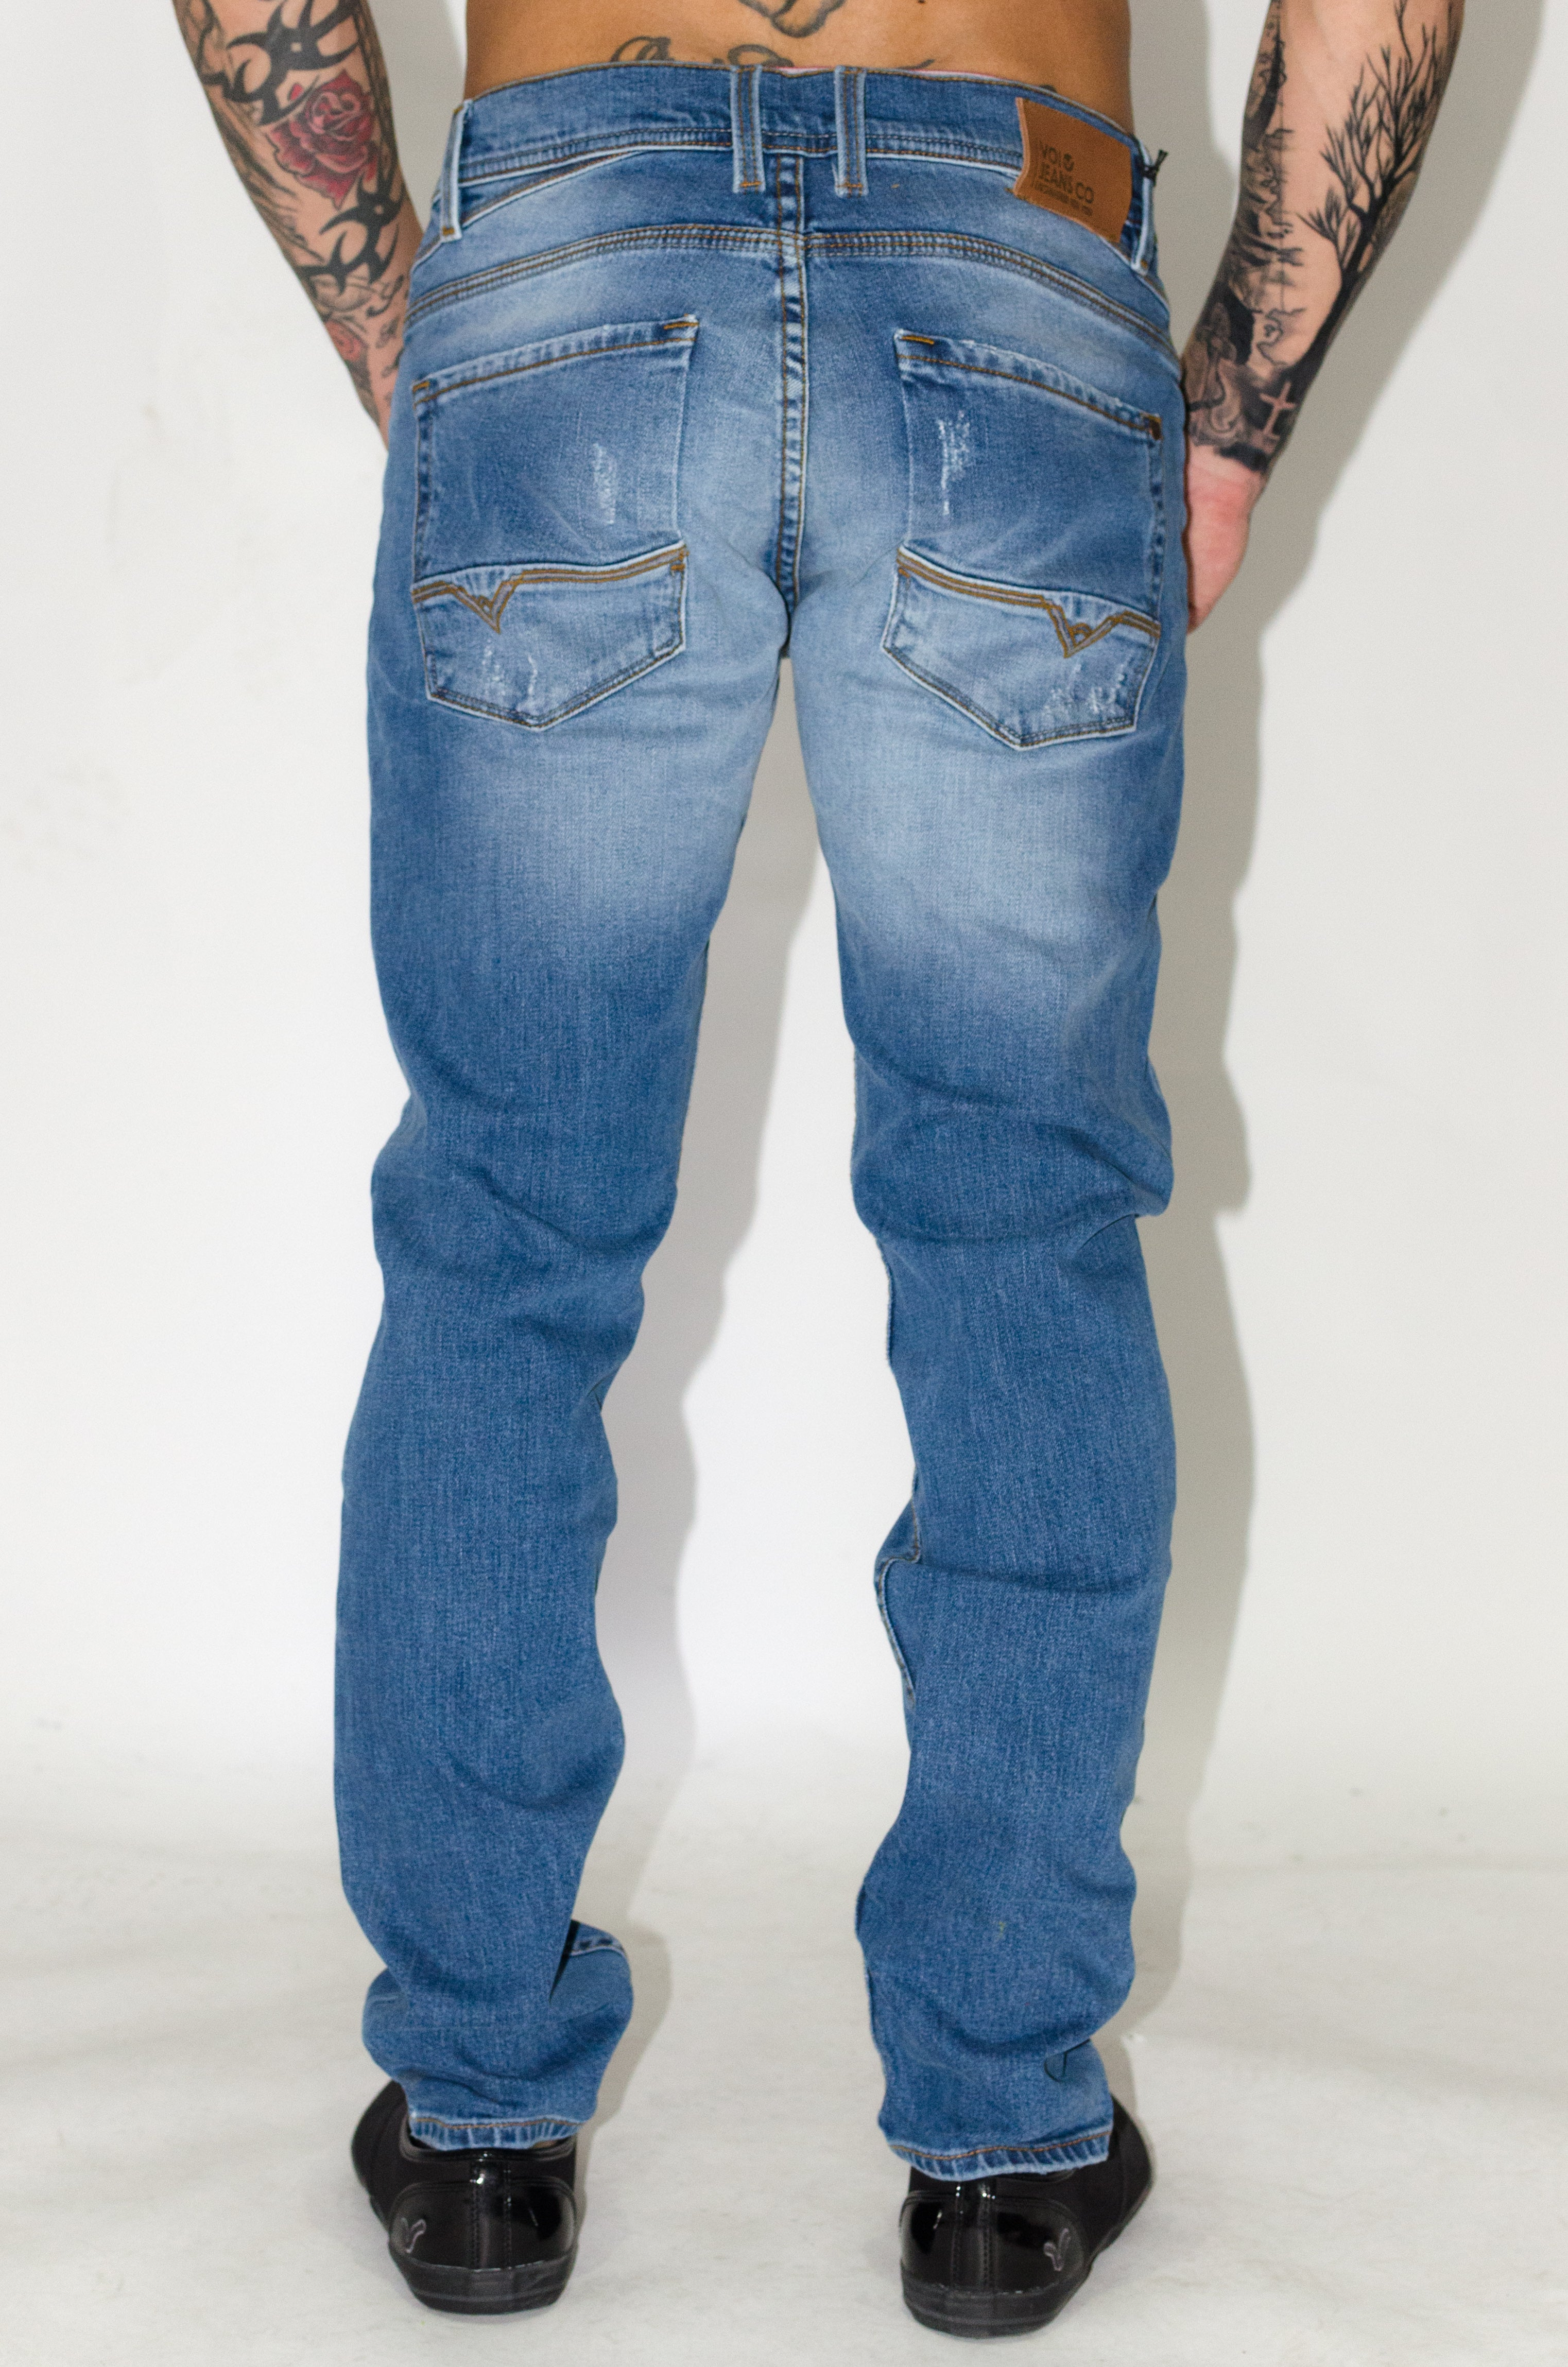 HJ 7070 Tapered Jeans